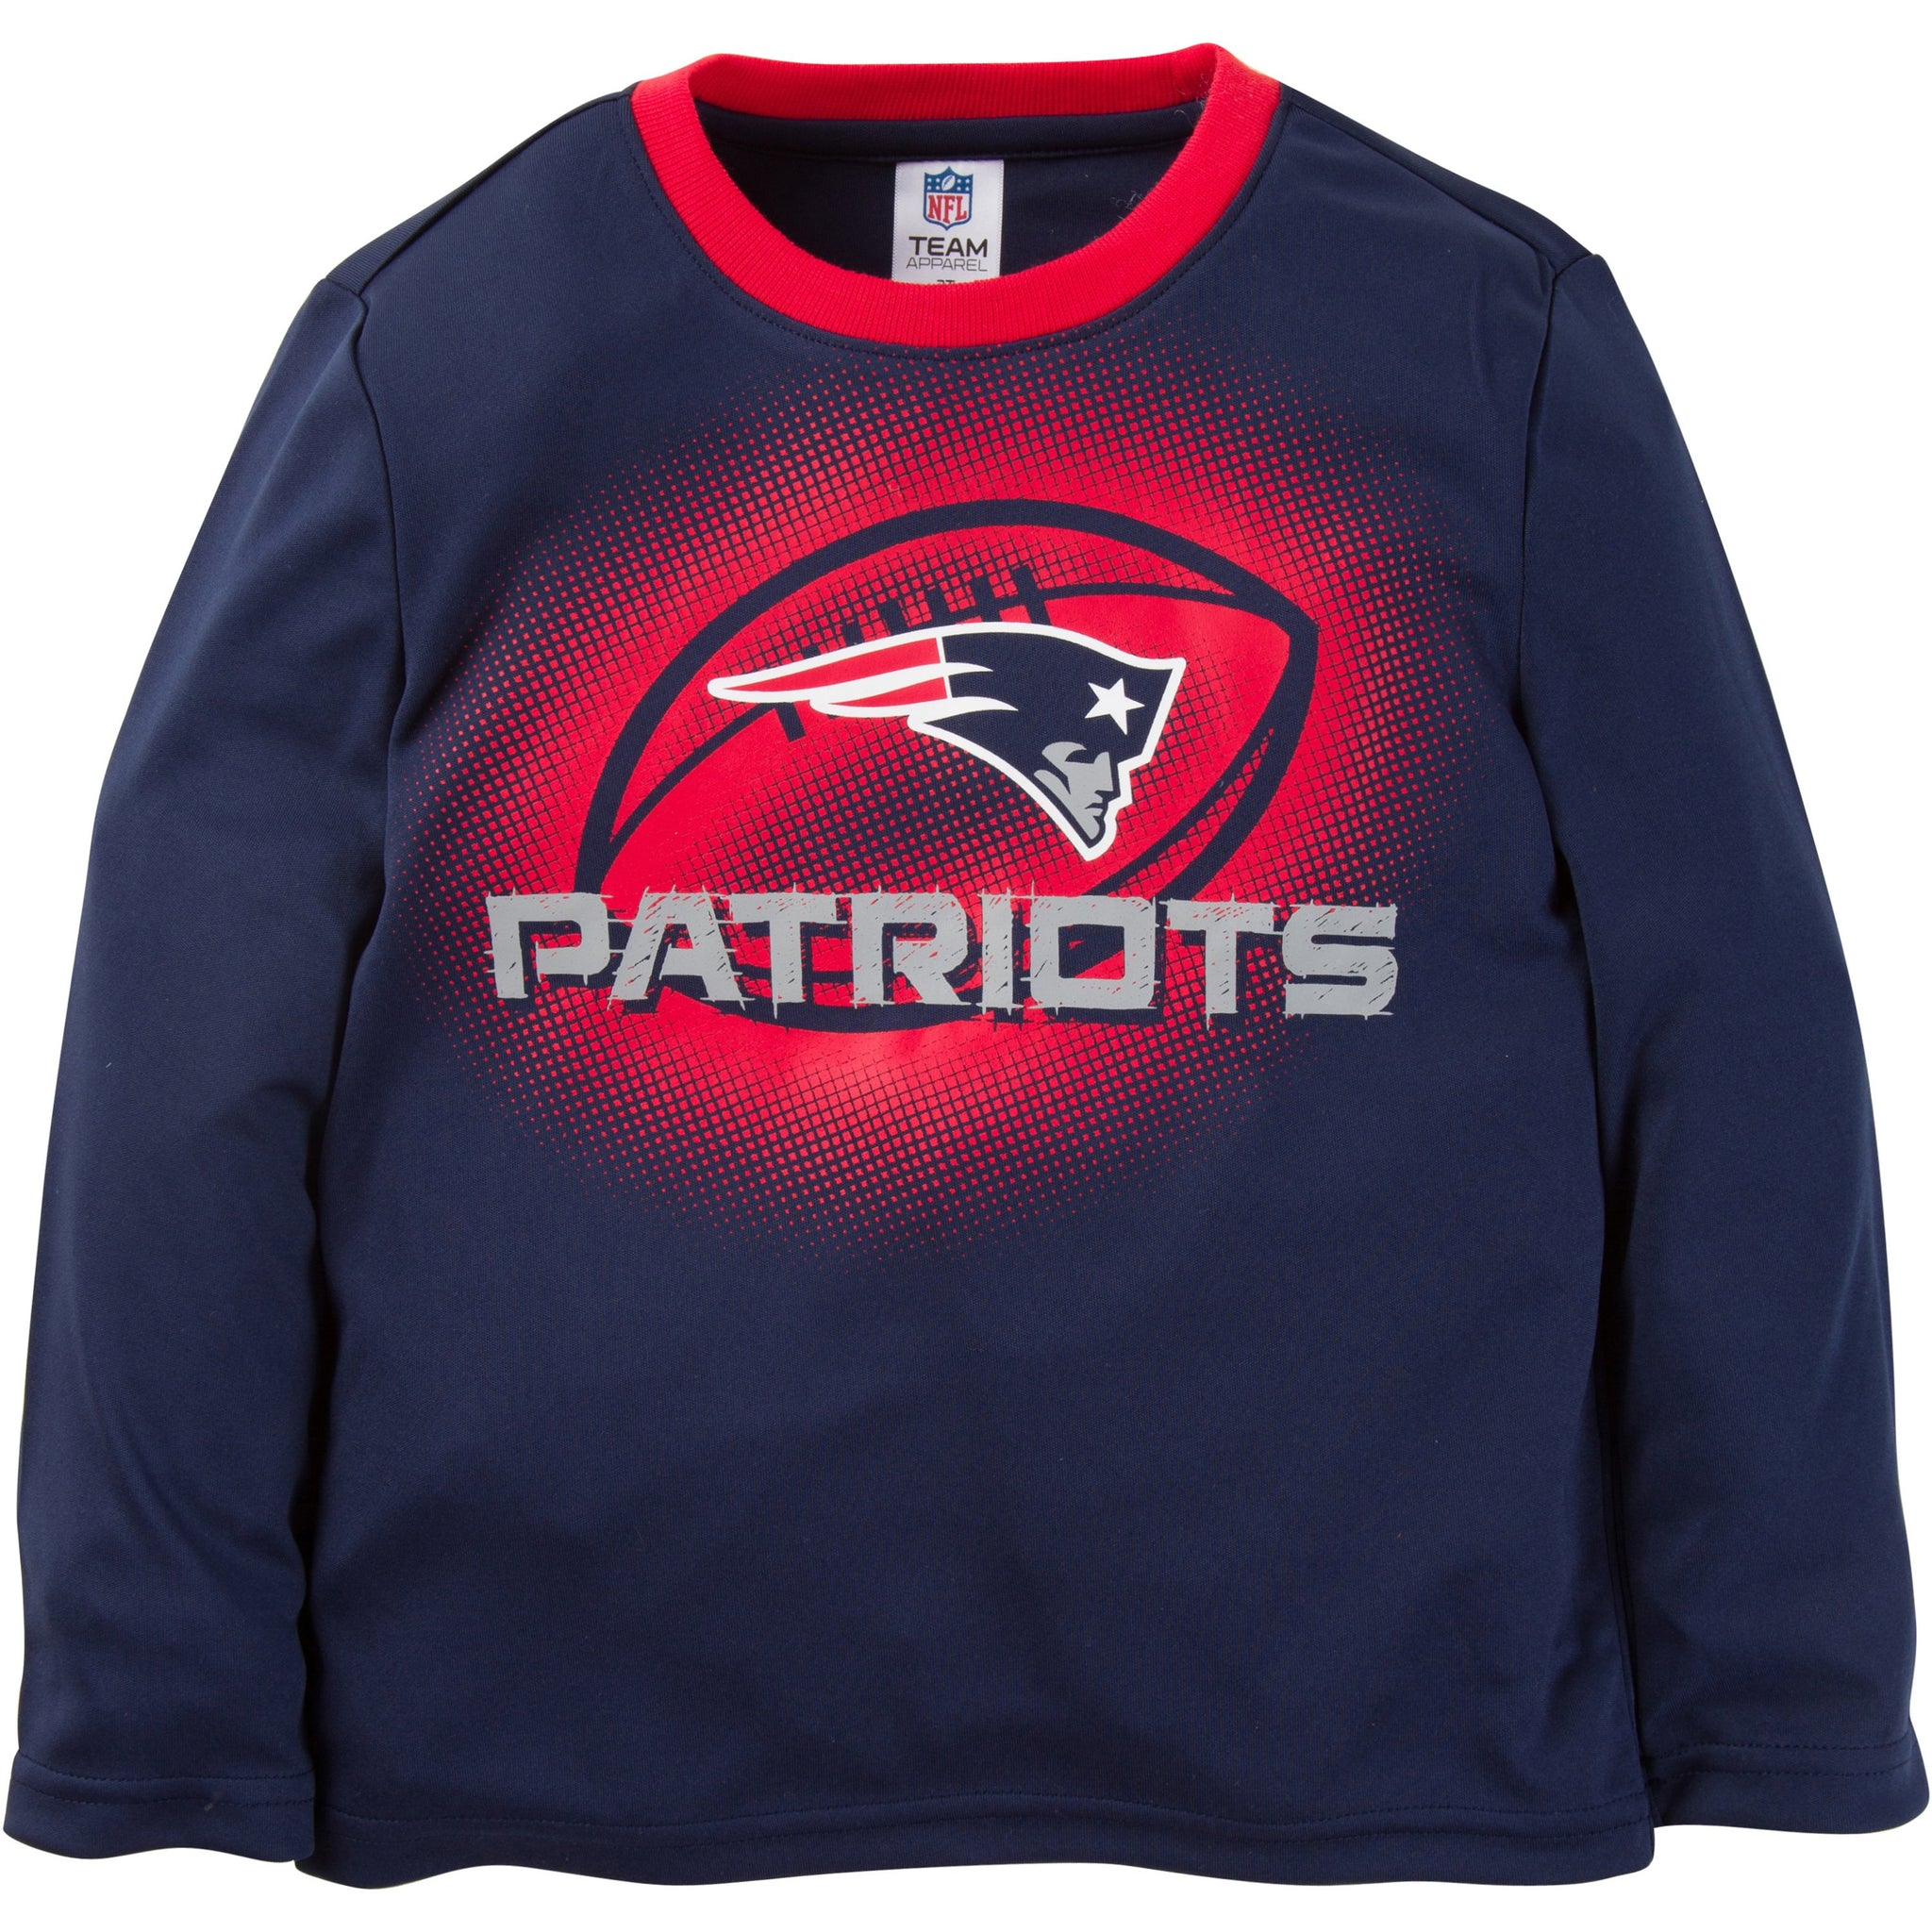 NFL New England Patriots Toddler Boys Long Sleeve Performance Tee Shirt-Gerber Childrenswear